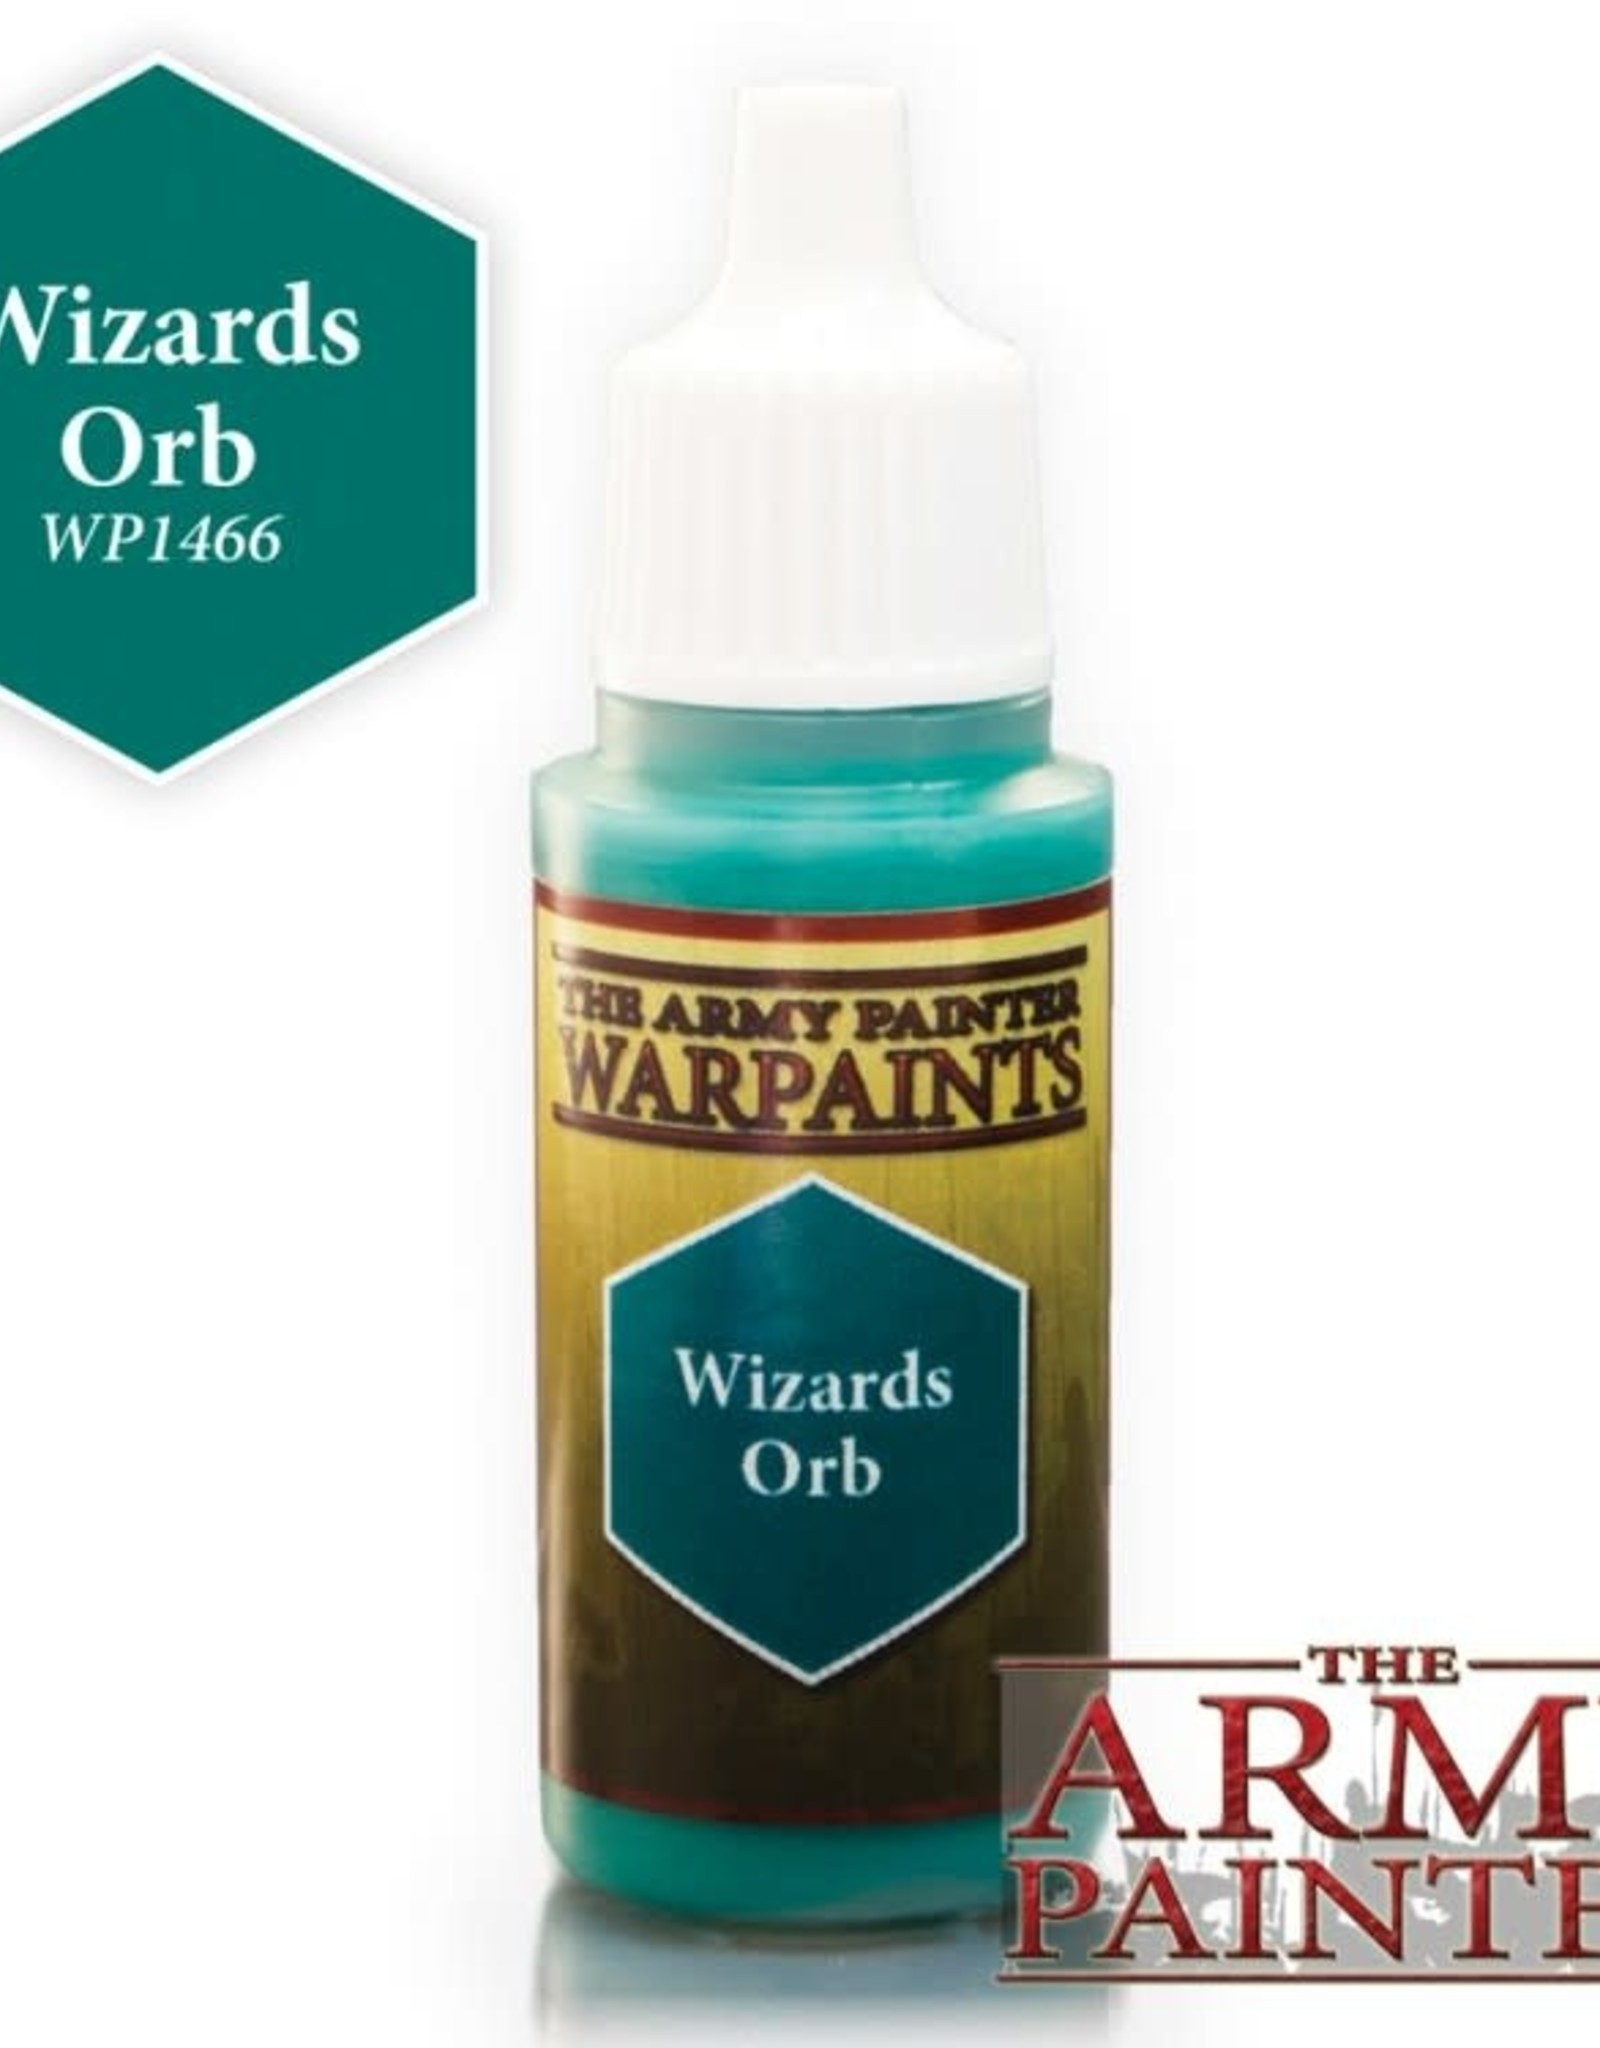 The Army Painter Warpaints - Wizards Orb